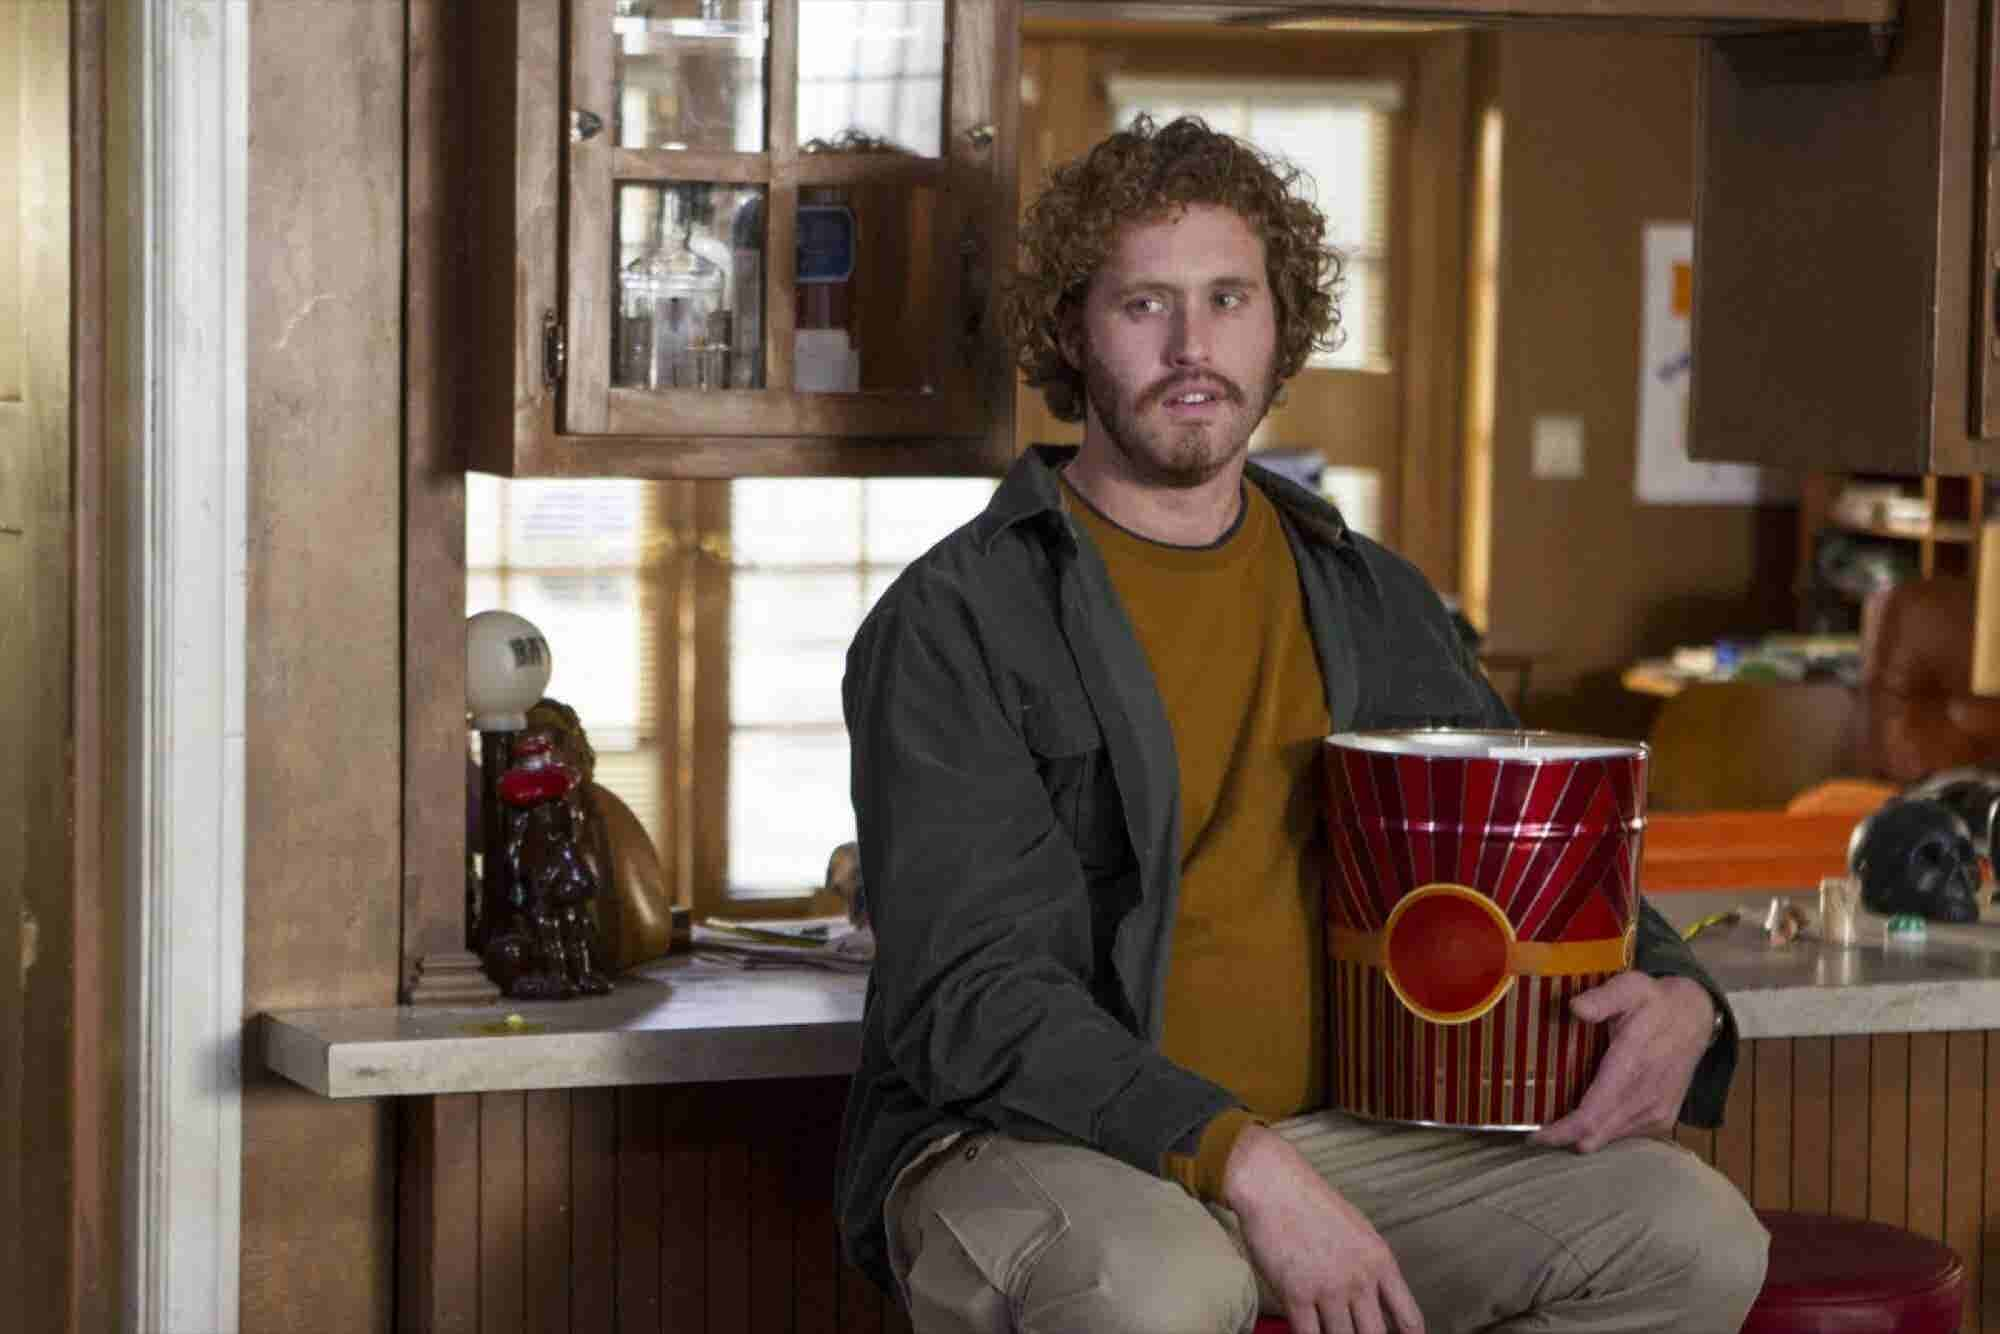 Hey Juicero, Erlich Bachman Just Called and Wants to Invest